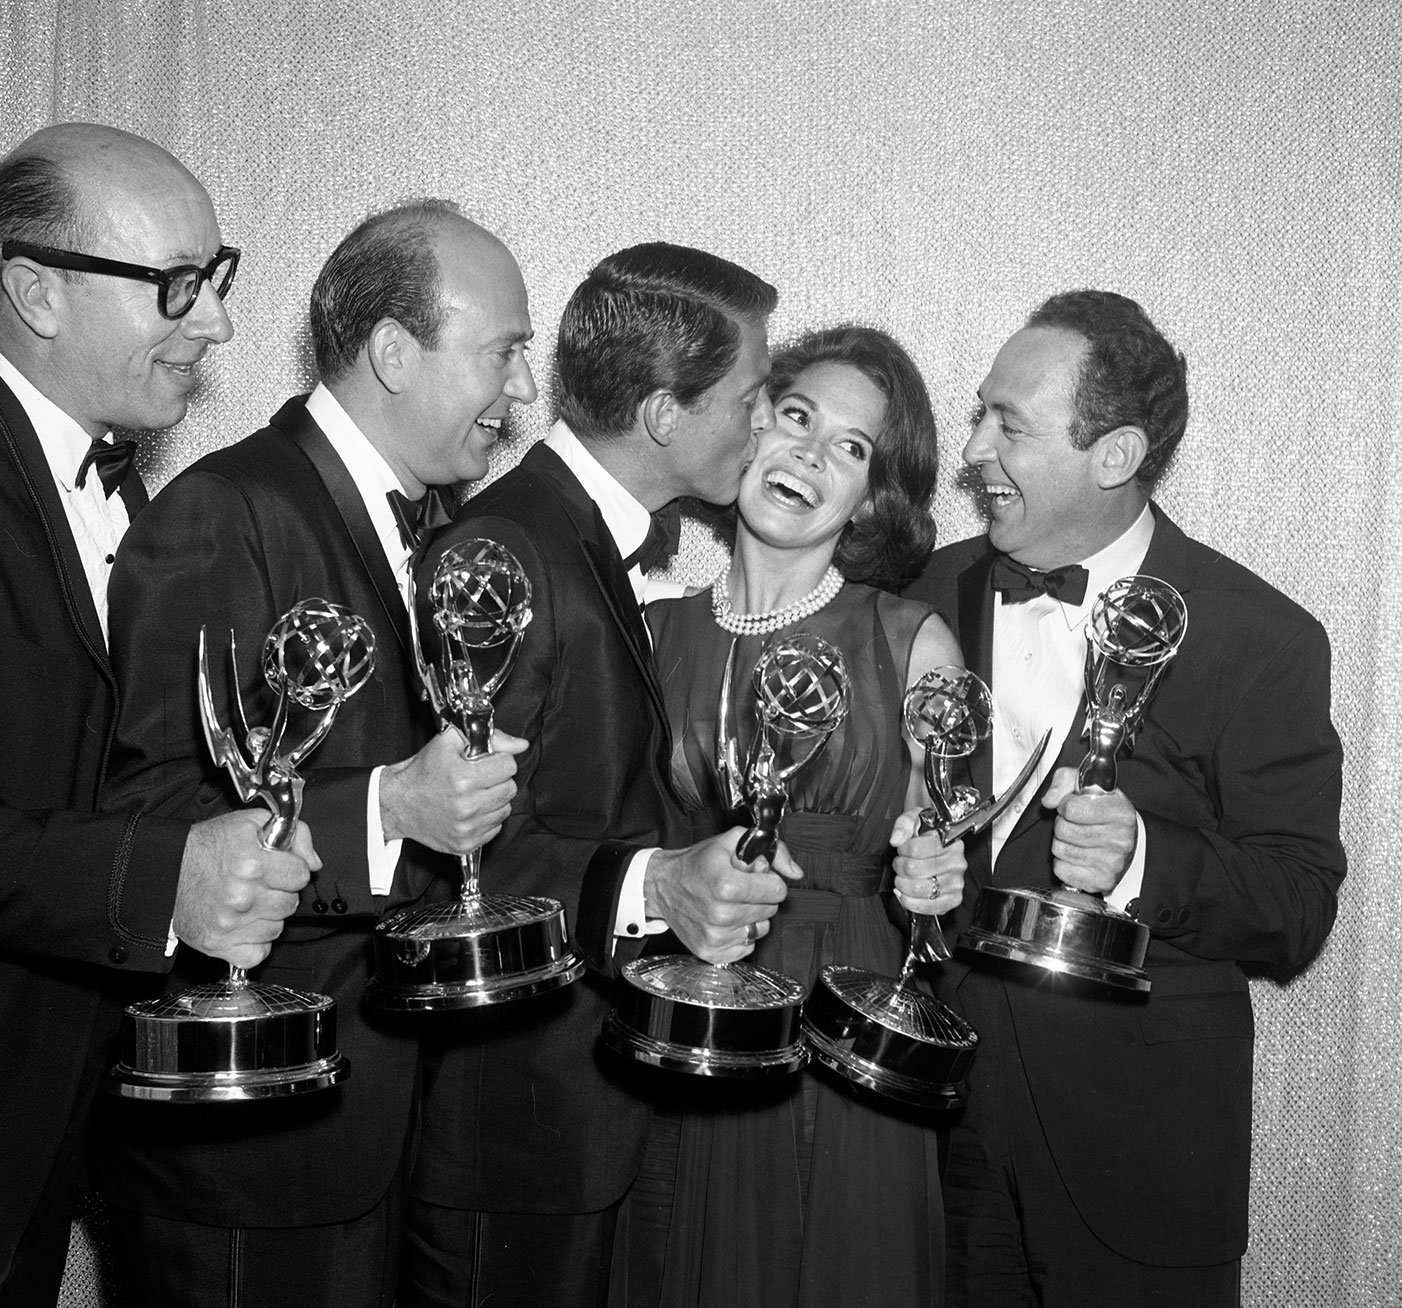 Mary Tyler Moore Remembers The Emmys: An interview with the TV icon as she reminisces about the biggest night on the small screen  |  #VioletGrey, The Industry's Beauty Edit